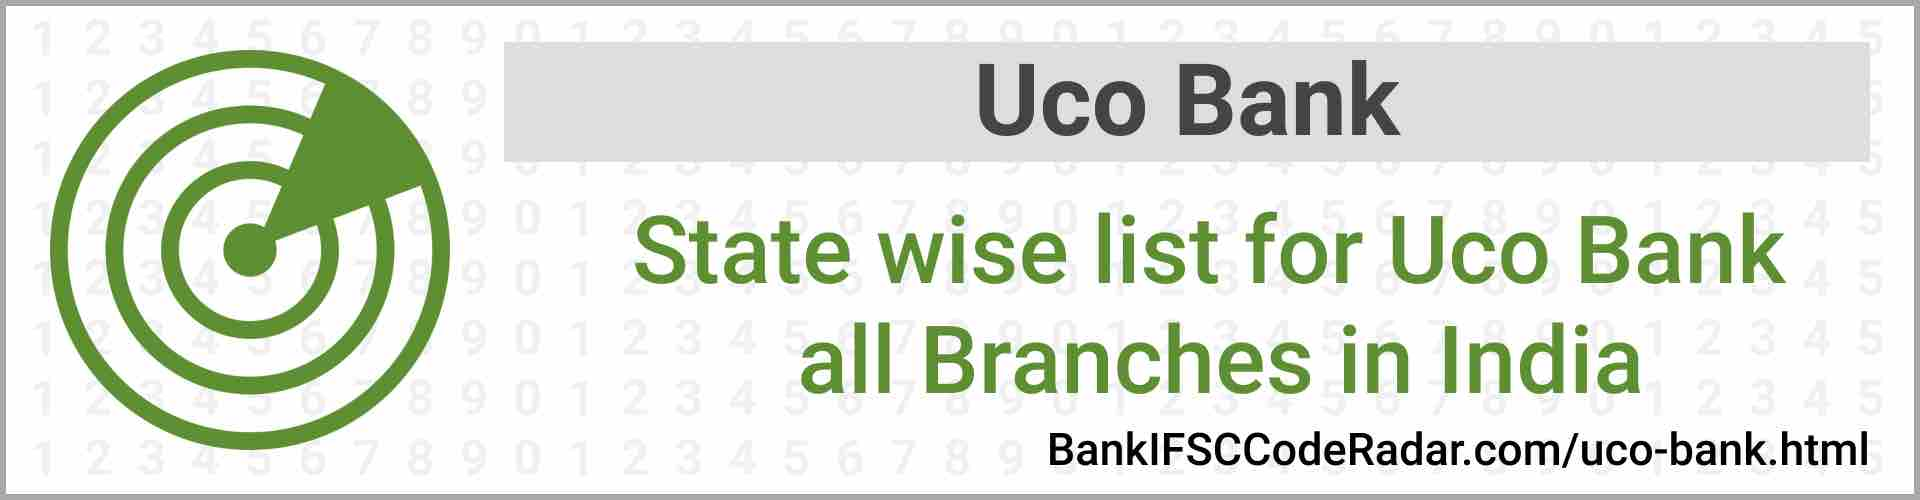 Uco Bank All Branches India